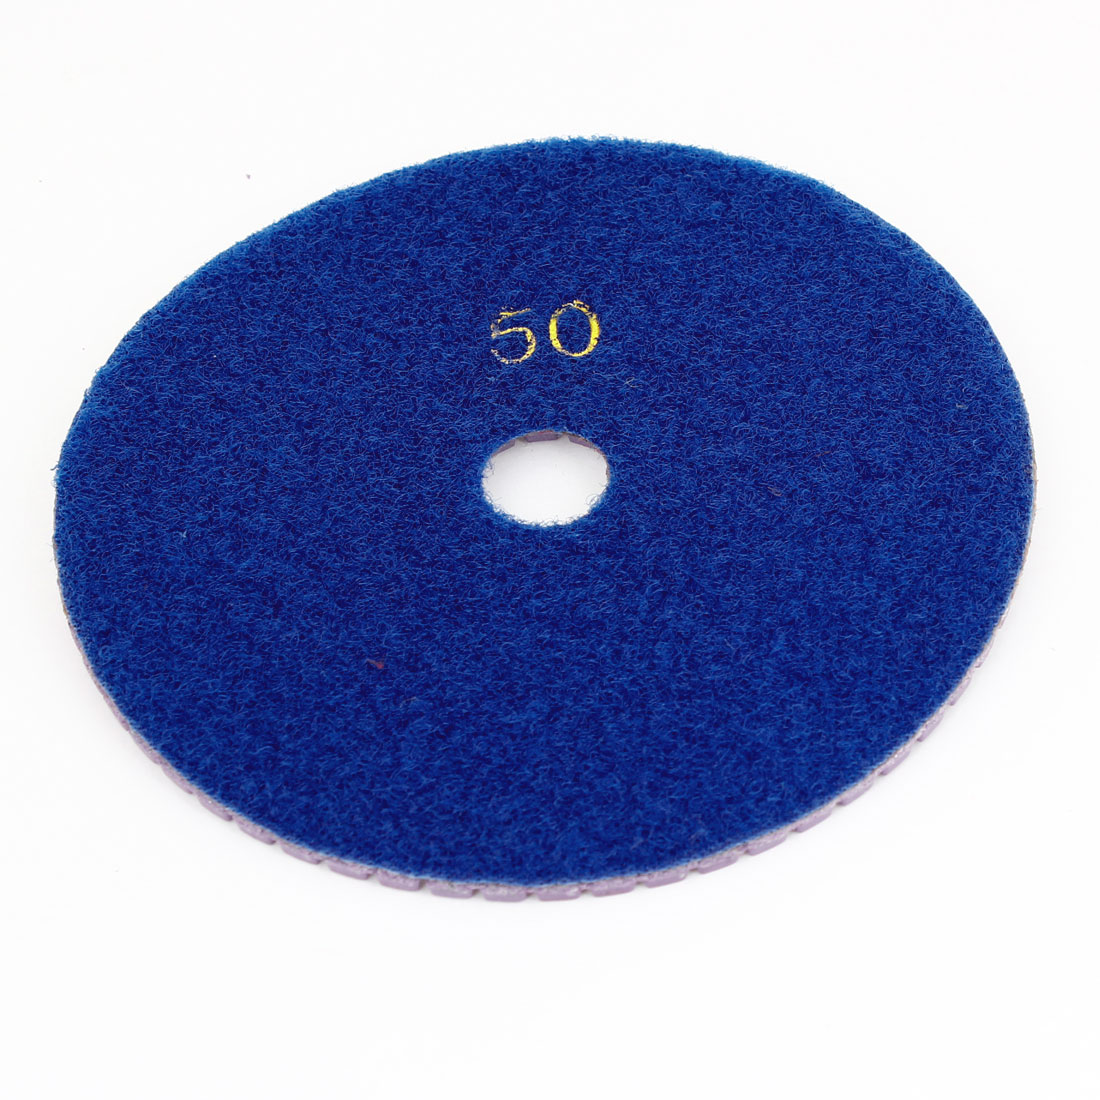 "4.8"" Dia Concrete Diamond Royal Blue Polisher Polishing Buffer Pad 50 Grit"